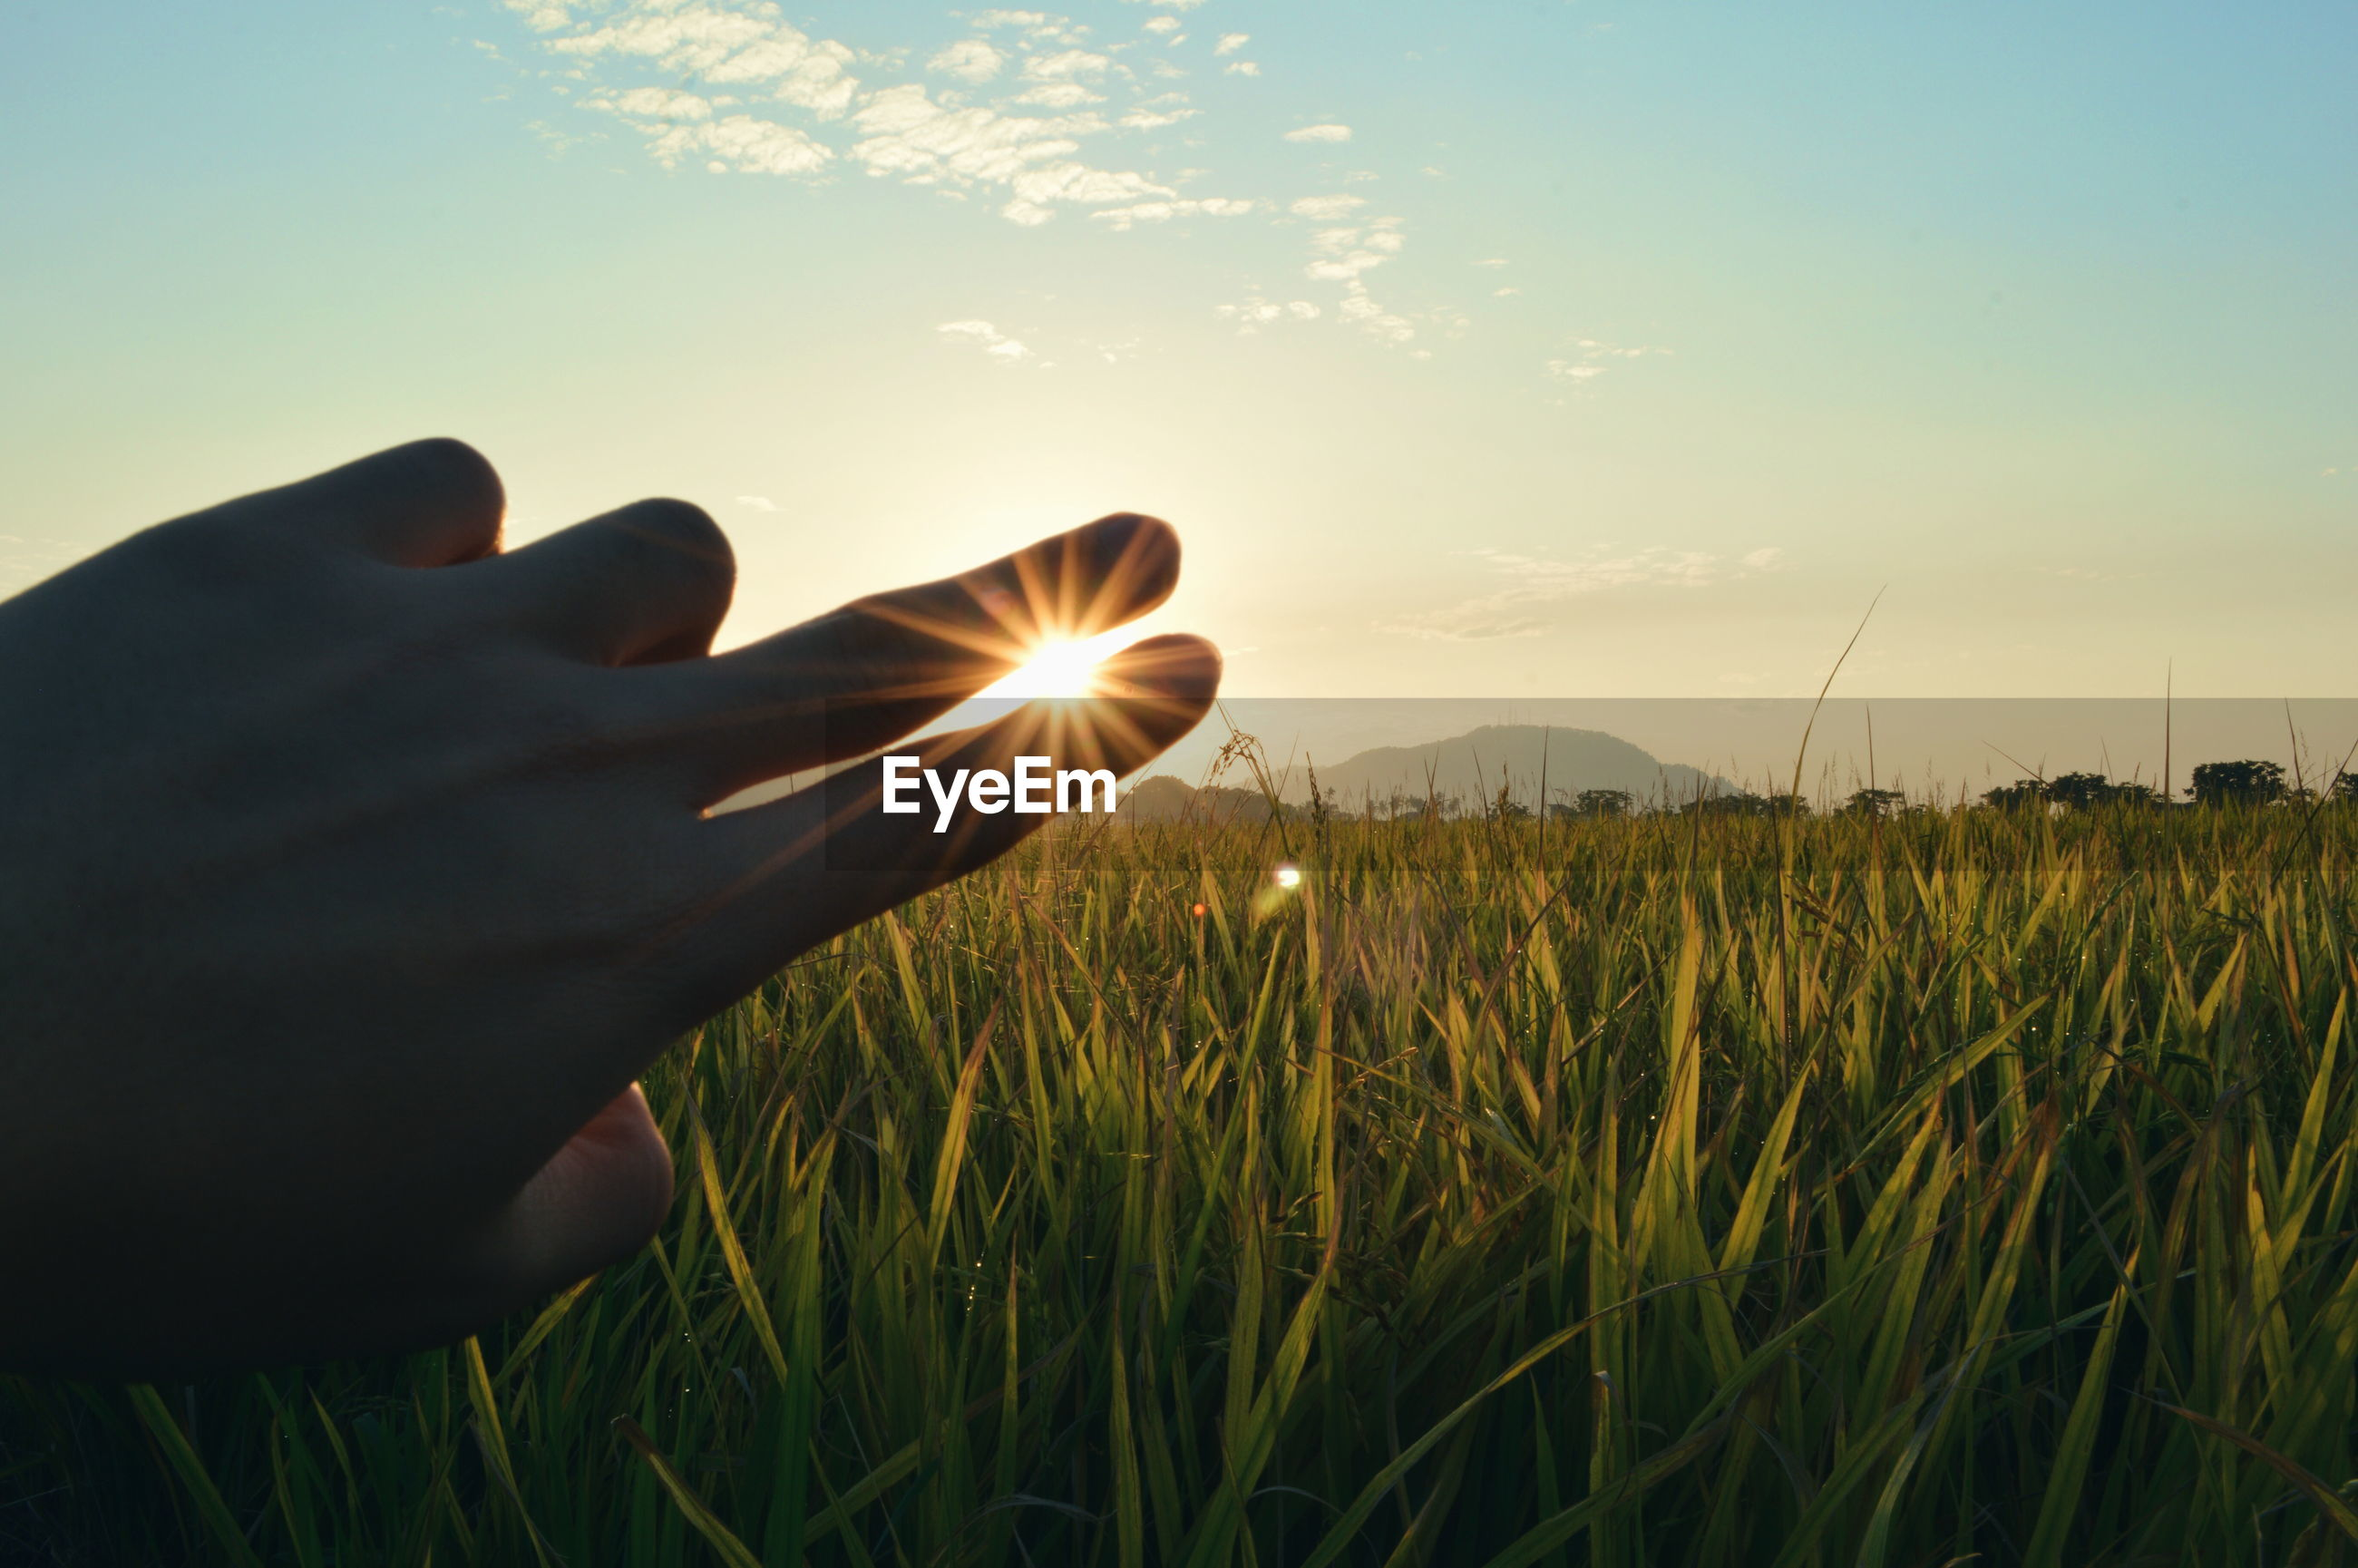 Optical illusion of fingers holding sun over agricultural field against sky